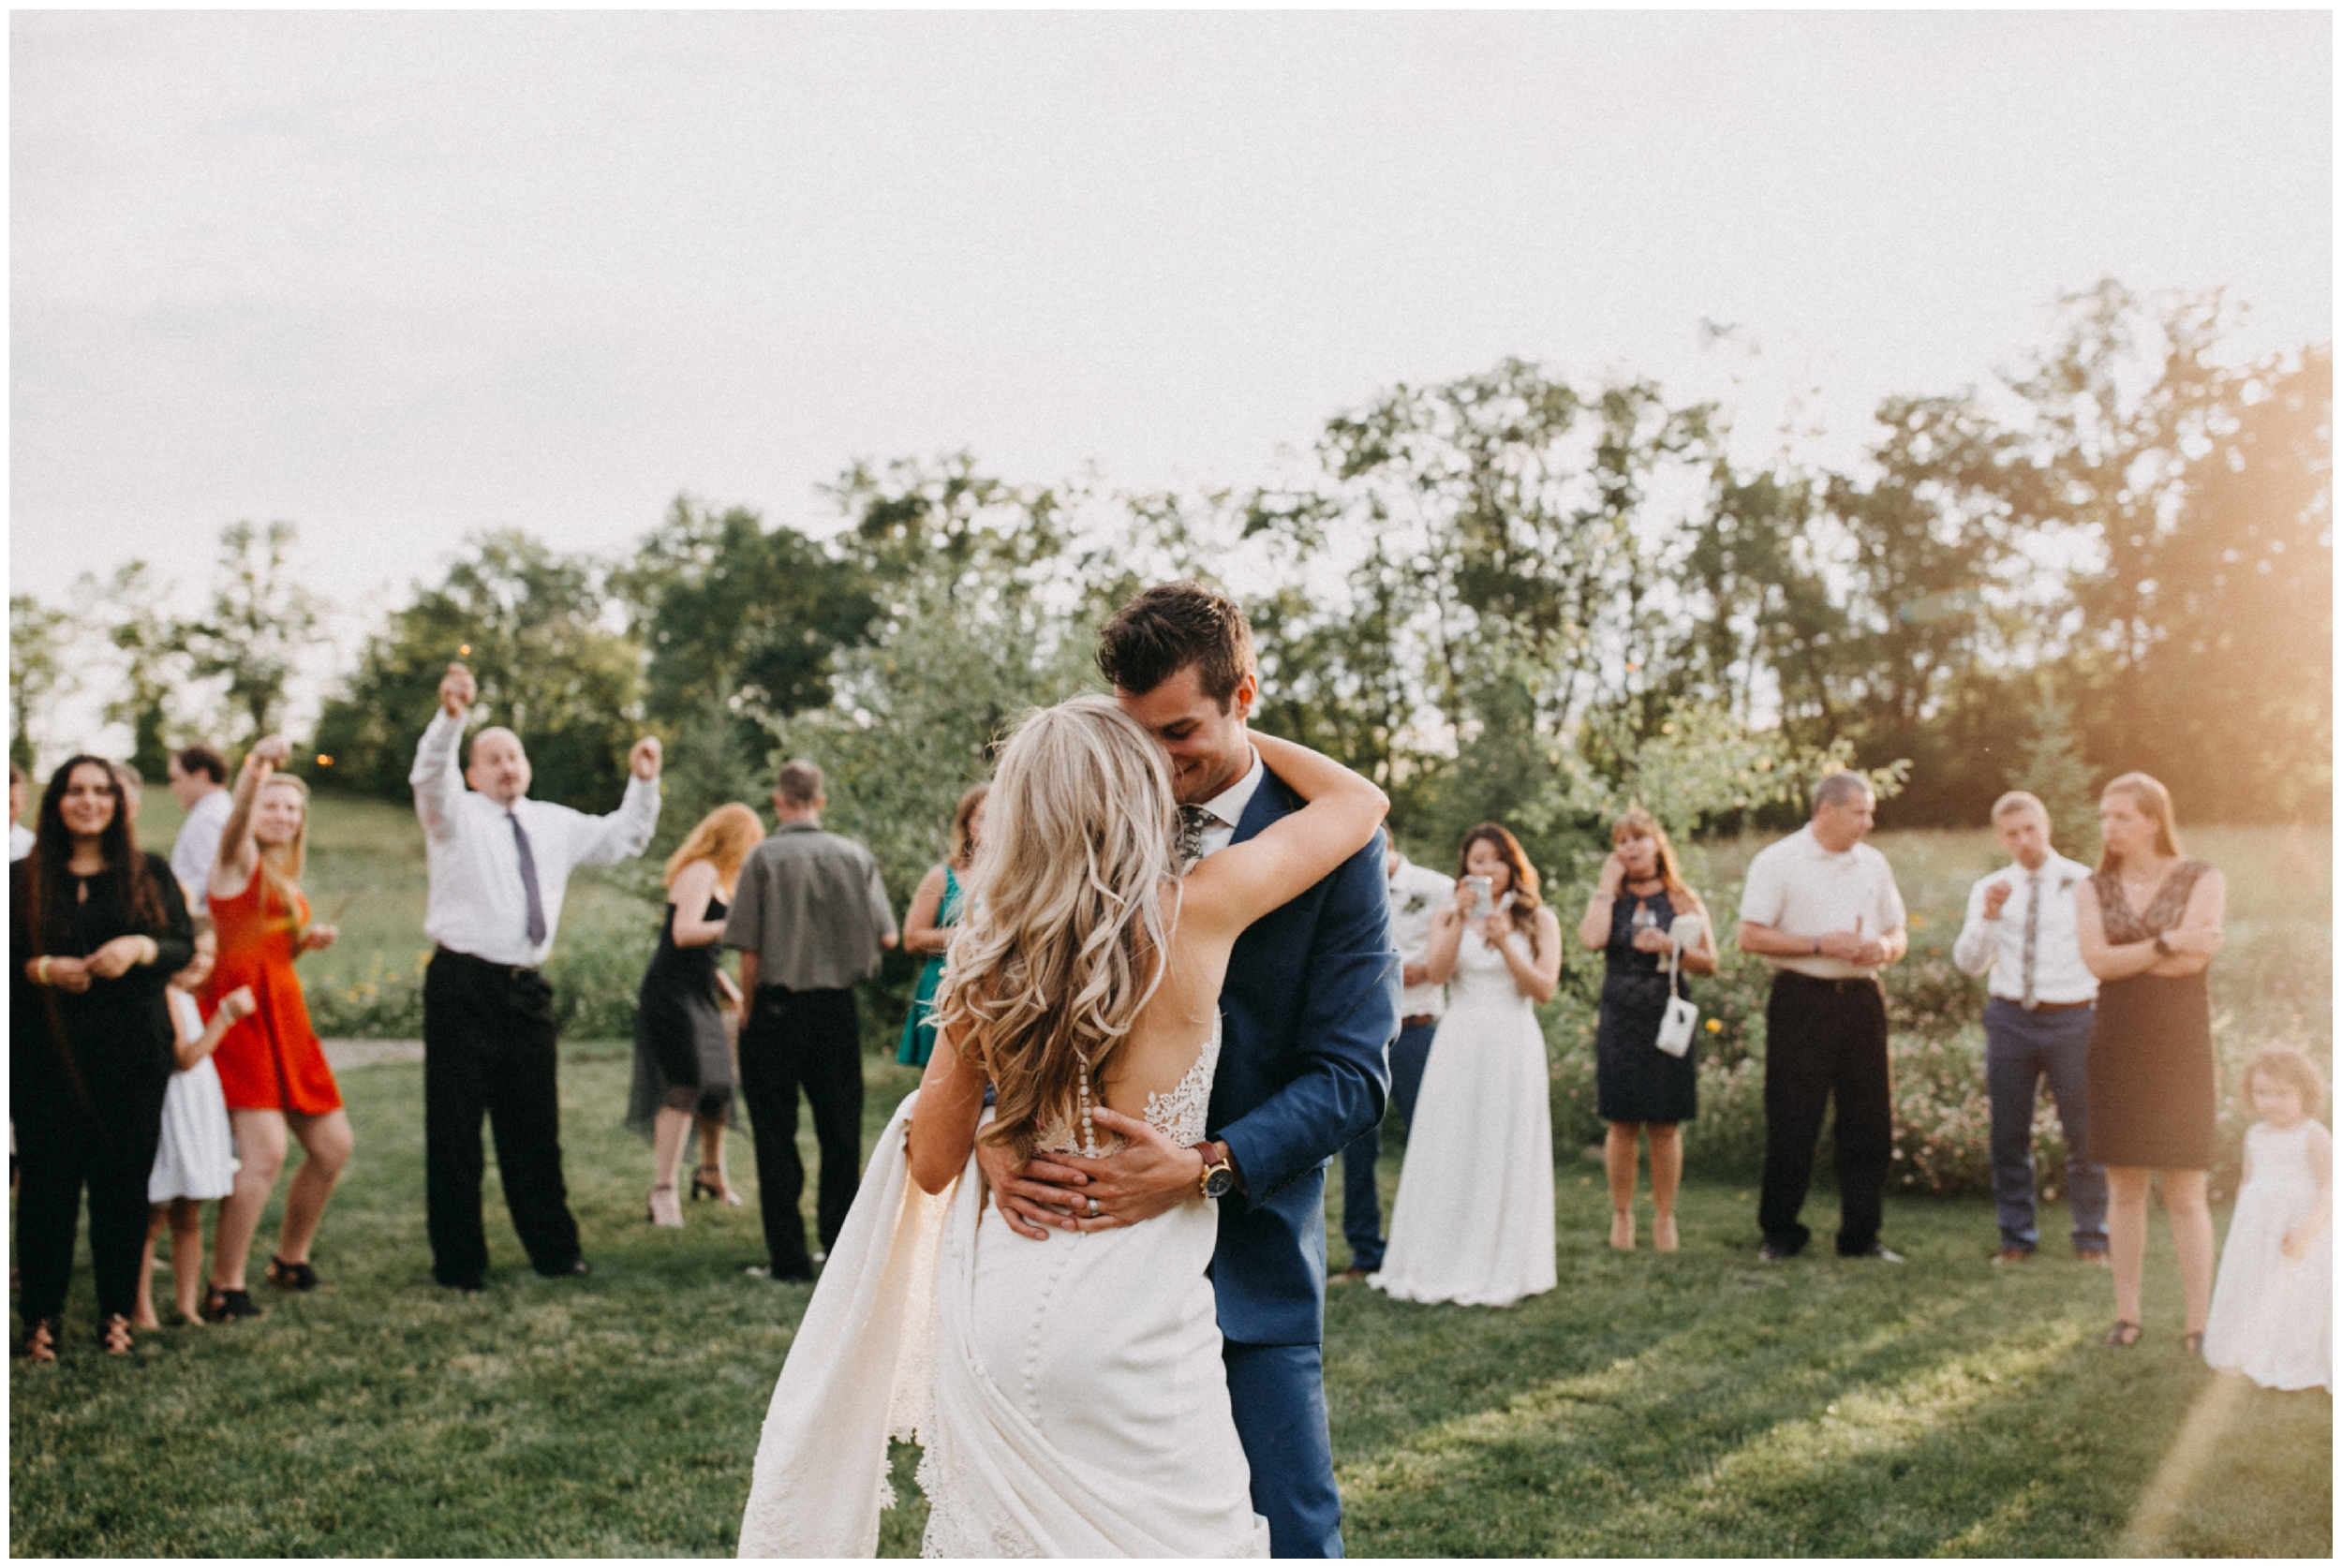 Romantic first dance during sunset at Creekside Farm wedding